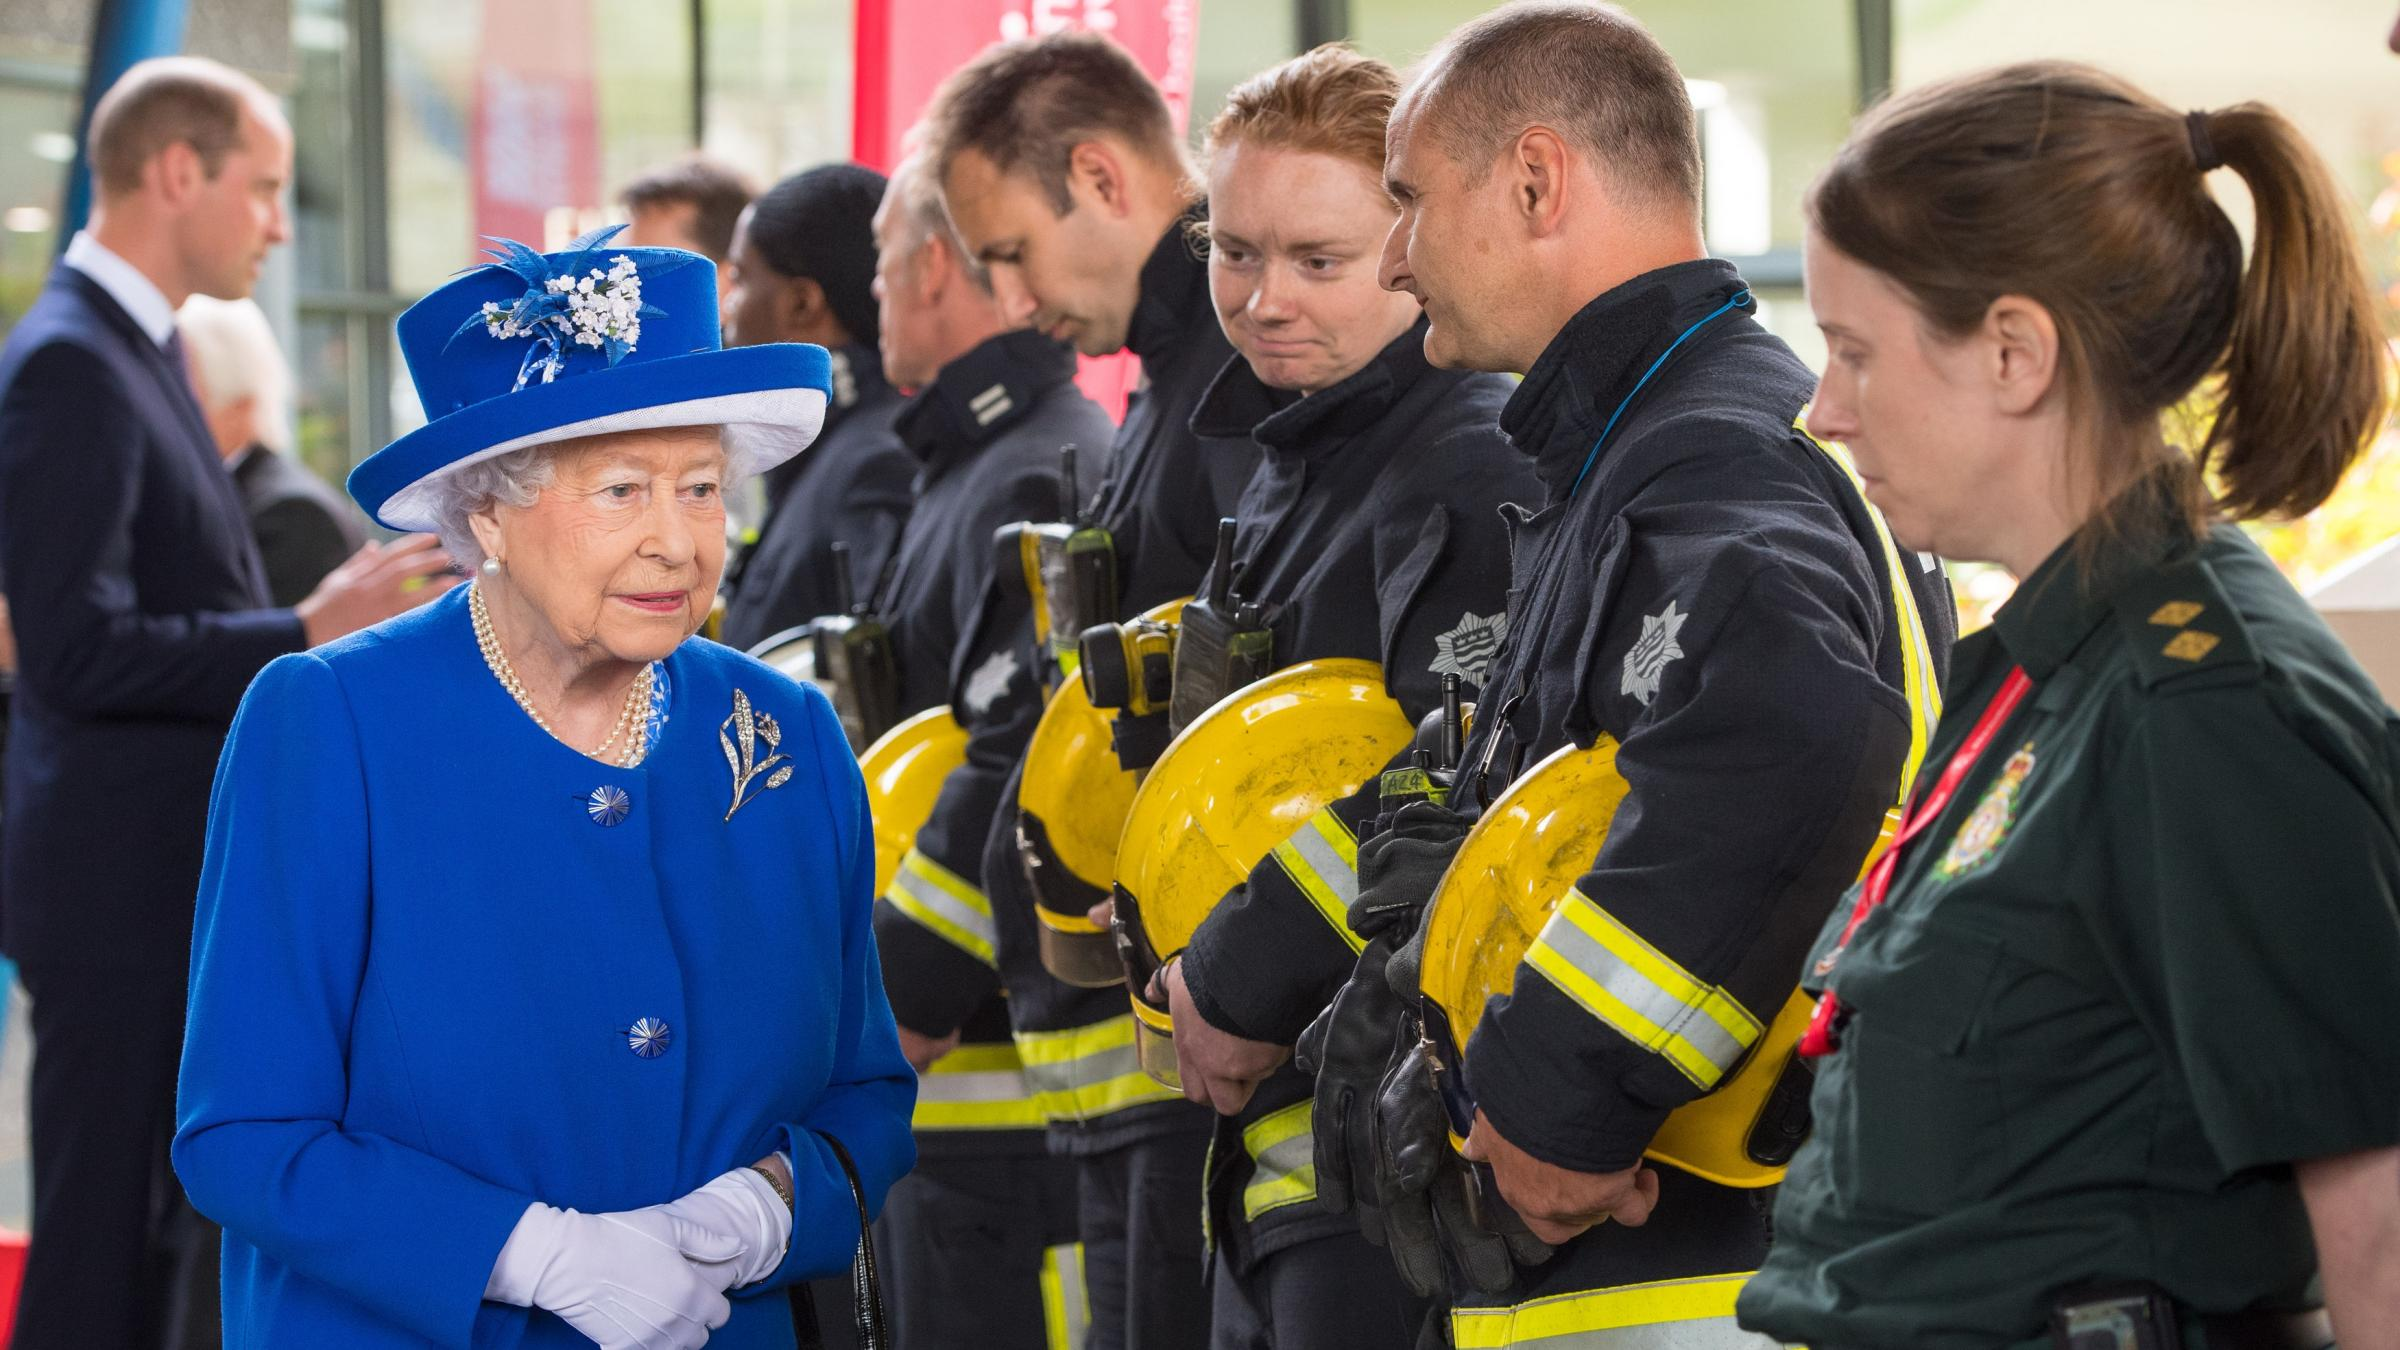 Queen Elizabeth Holds Minute's Silence For Victims Of London Attack